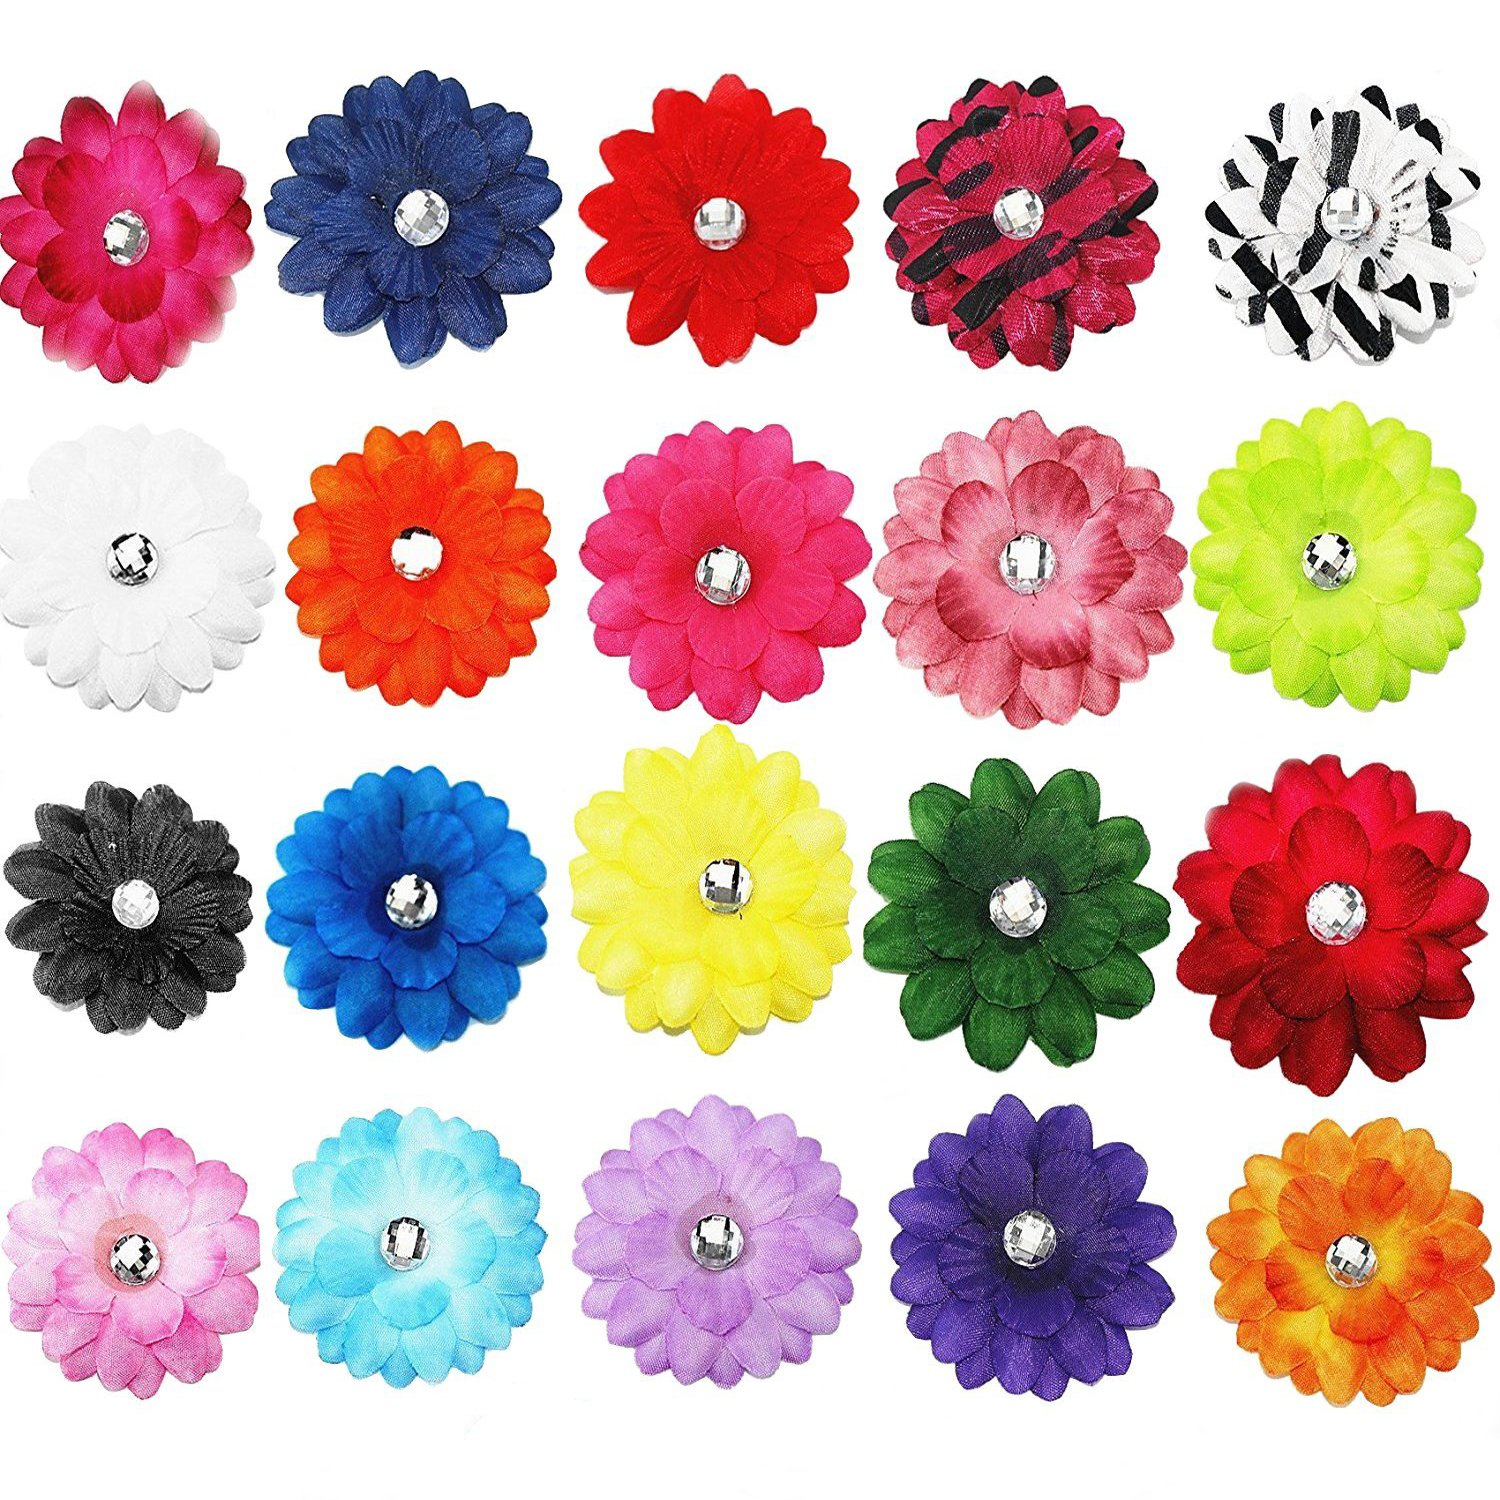 Amazon 100 in a bag soft mini daisy flowers2 2 inch small amazon 100 in a bag soft mini daisy flowers2 2 inch small flowers great for craft projects izmirmasajfo